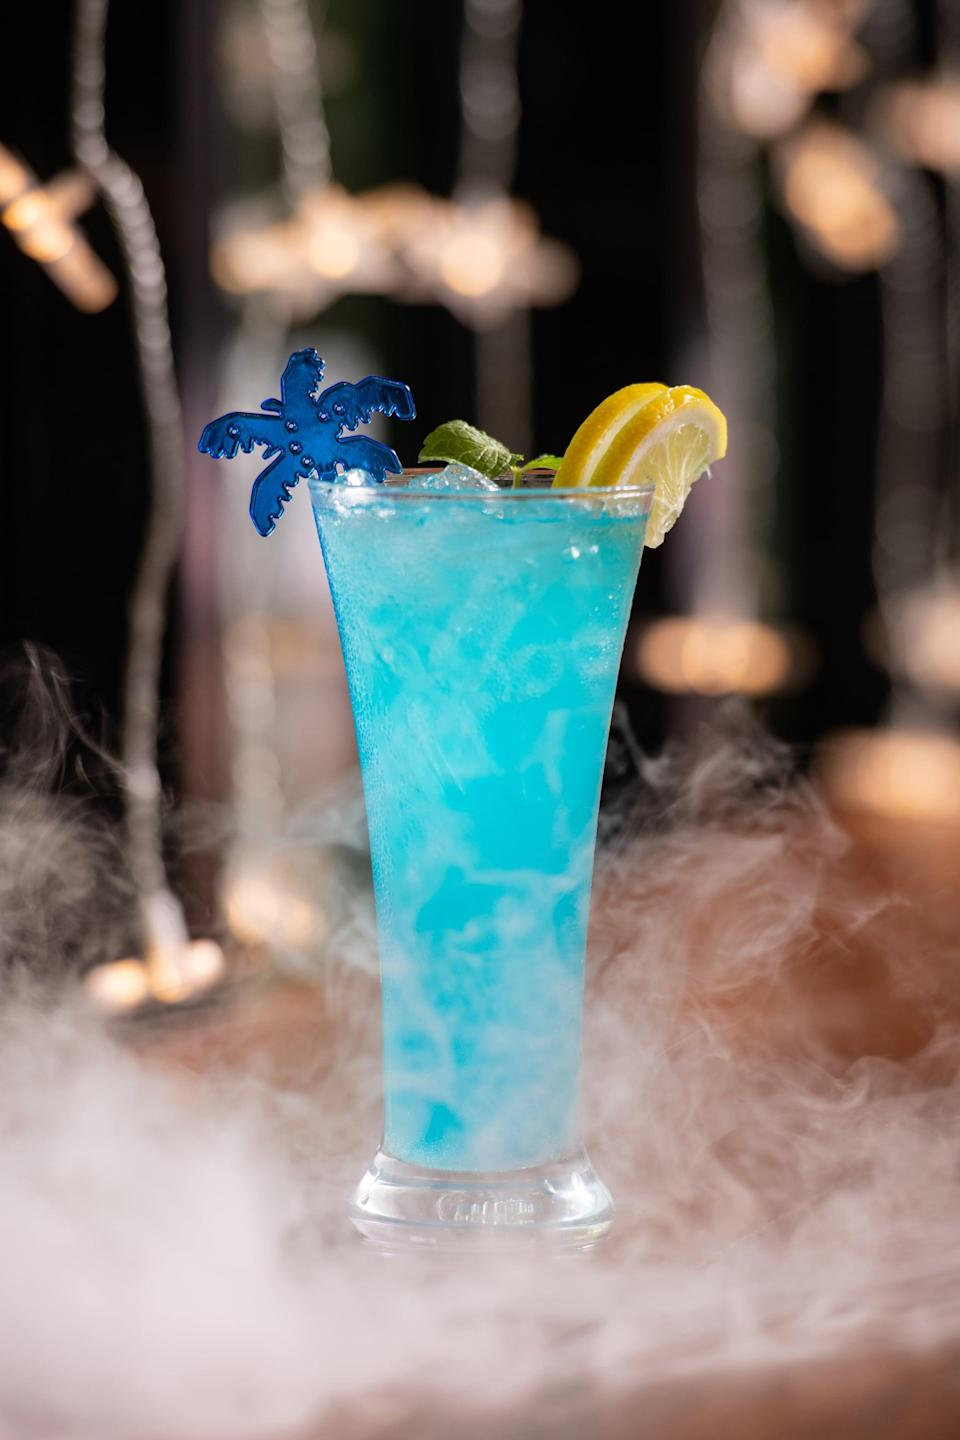 """<p>Montana is ringing in summer the best way they know how - with blue Hawaiians! These colorful cocktails bring the fun to any hot day, no matter if you're seaside or landlocked.</p> <p><strong>Get the recipe</strong>: <a href=""""https://www.popsugar.com/buy?url=https%3A%2F%2Fwww.liquor.com%2Frecipes%2Fblue-hawaii%2F&p_name=blue%20Hawaiian&retailer=liquor.com&evar1=yum%3Aus&evar9=47471653&evar98=https%3A%2F%2Fwww.popsugar.com%2Ffood%2Fphoto-gallery%2F47471653%2Fimage%2F47475466%2FMontana-Blue-Hawaiian&list1=cocktails%2Cdrinks%2Calcohol%2Crecipes&prop13=api&pdata=1"""" class=""""link rapid-noclick-resp"""" rel=""""nofollow noopener"""" target=""""_blank"""" data-ylk=""""slk:blue Hawaiian"""">blue Hawaiian</a></p>"""